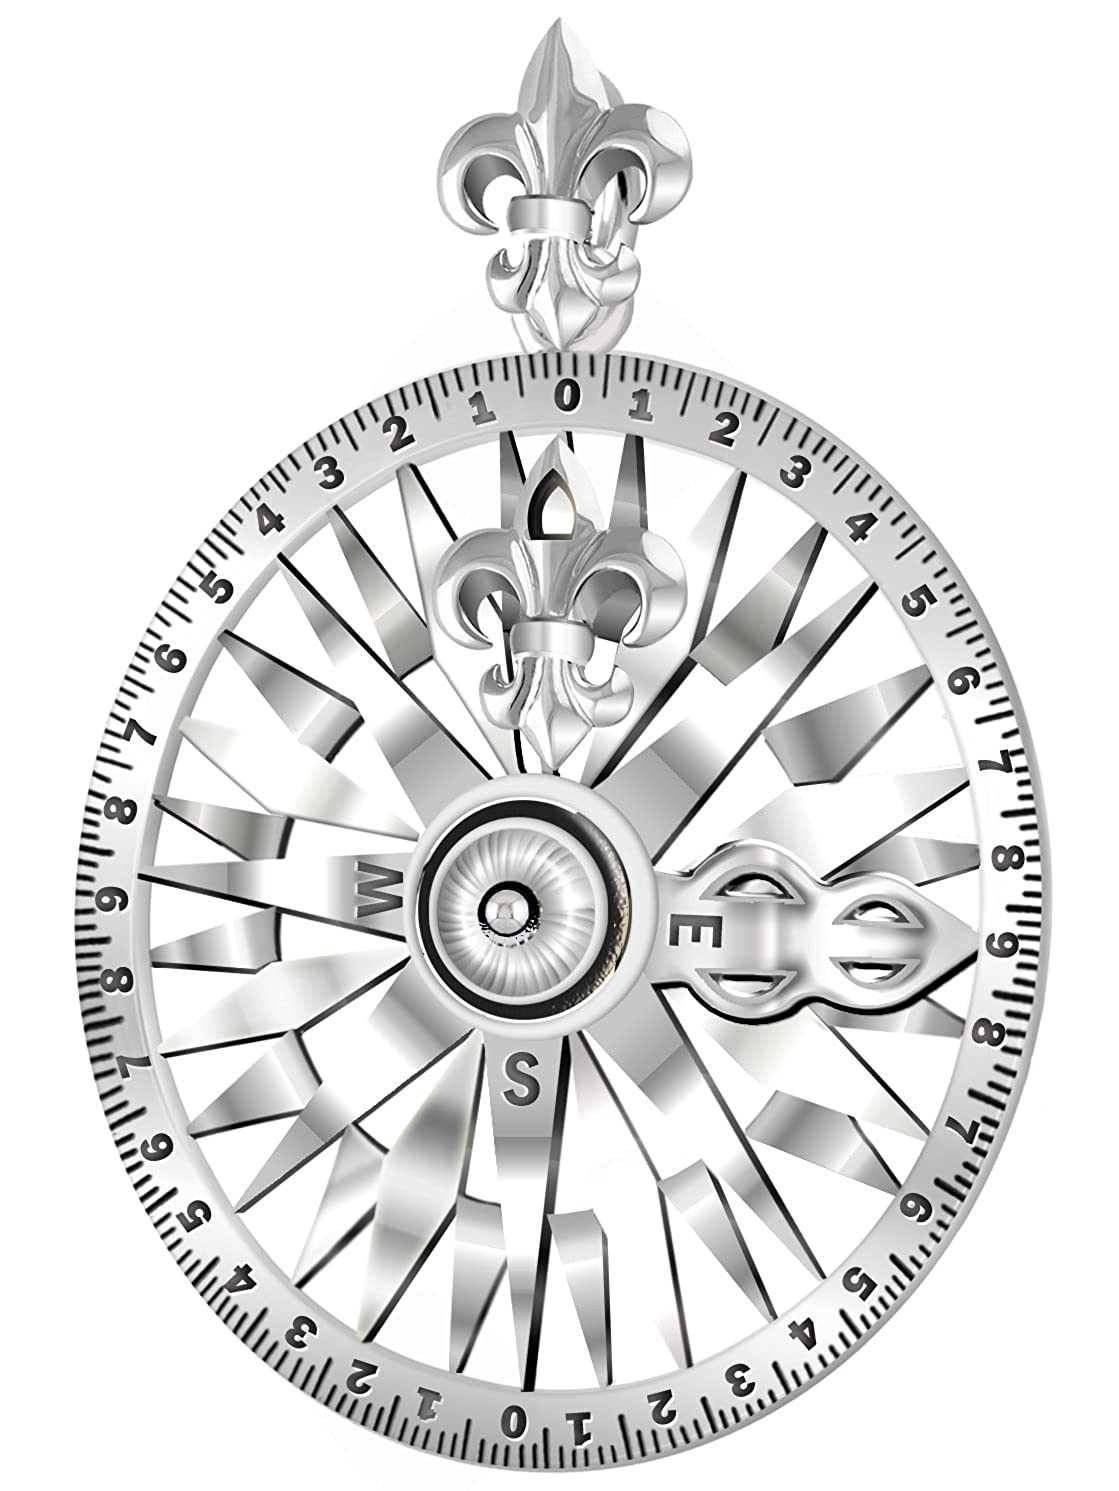 Sterling Silver Nautical Pirate Compass Necklace - DeluxeAdultCostumes.com